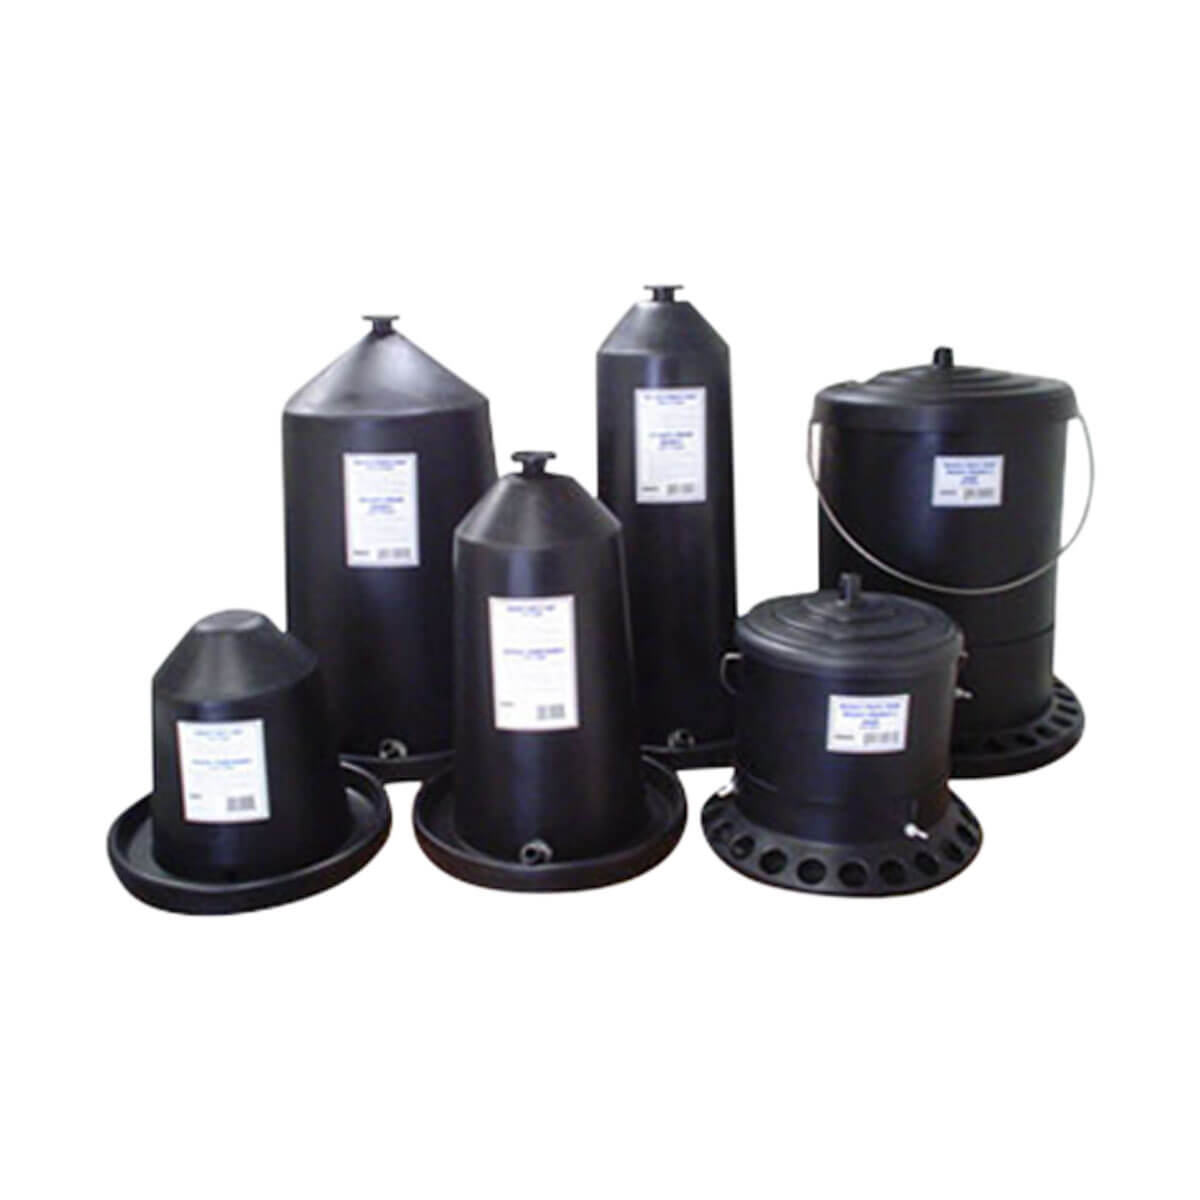 Poultry Waterer - 6 gal